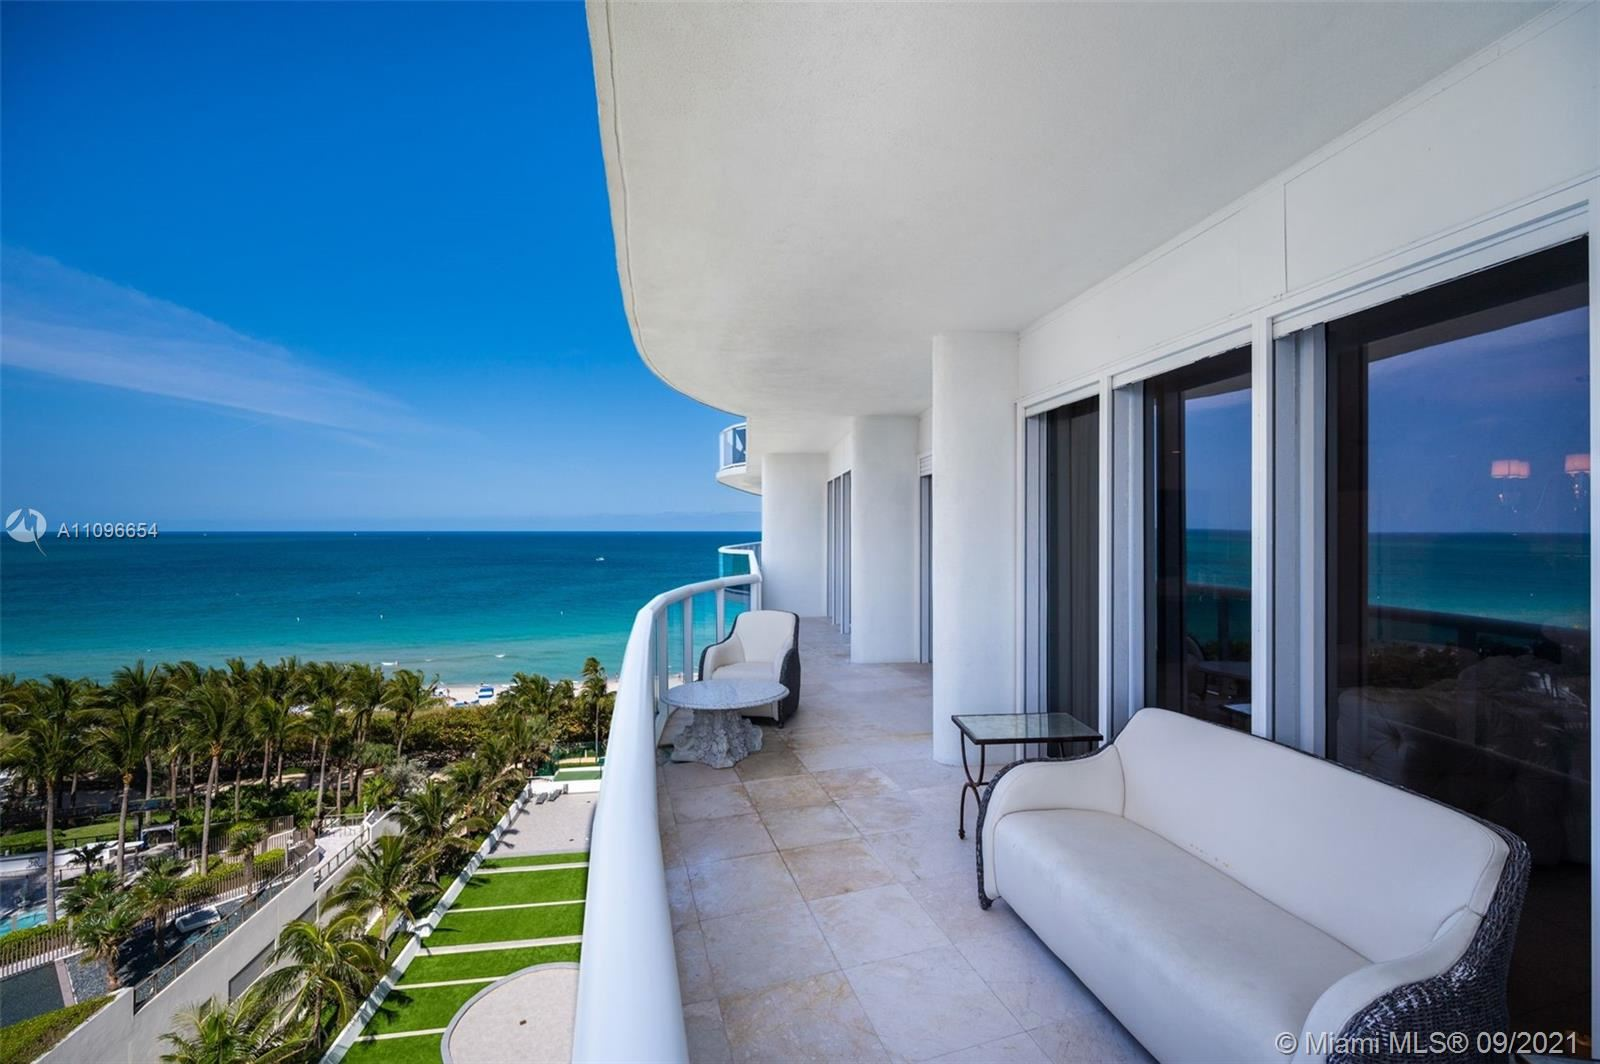 Photo of Bal Harbour, FL 33154 (MLS # A11096654)